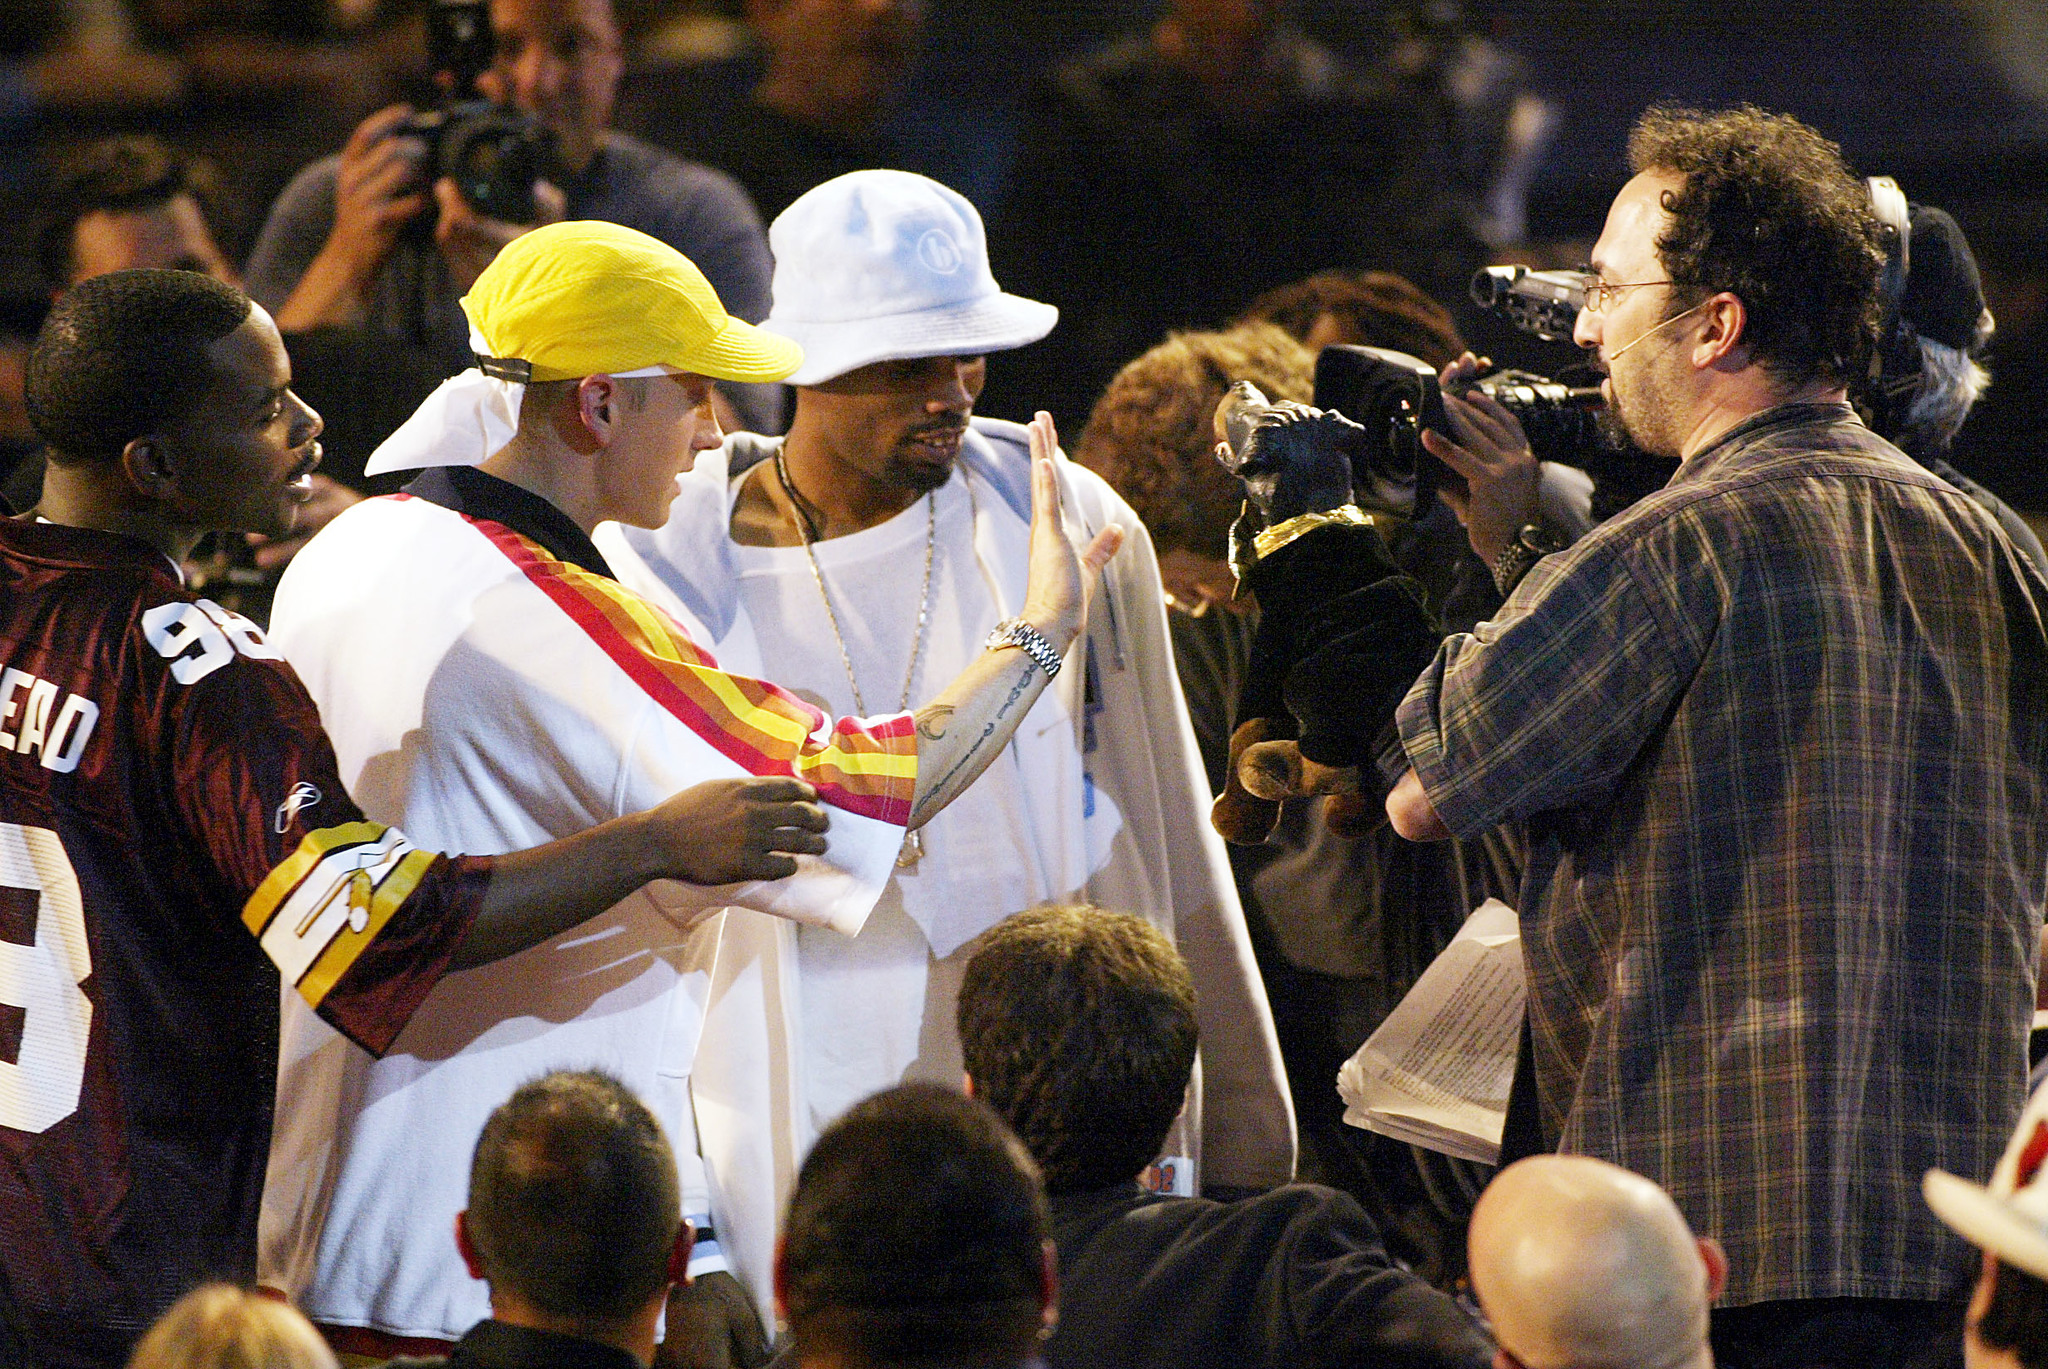 Eminem, Robert Smigel, Proof, and Obie Trice at an event for 2002 MTV Video Music Awards (2002)